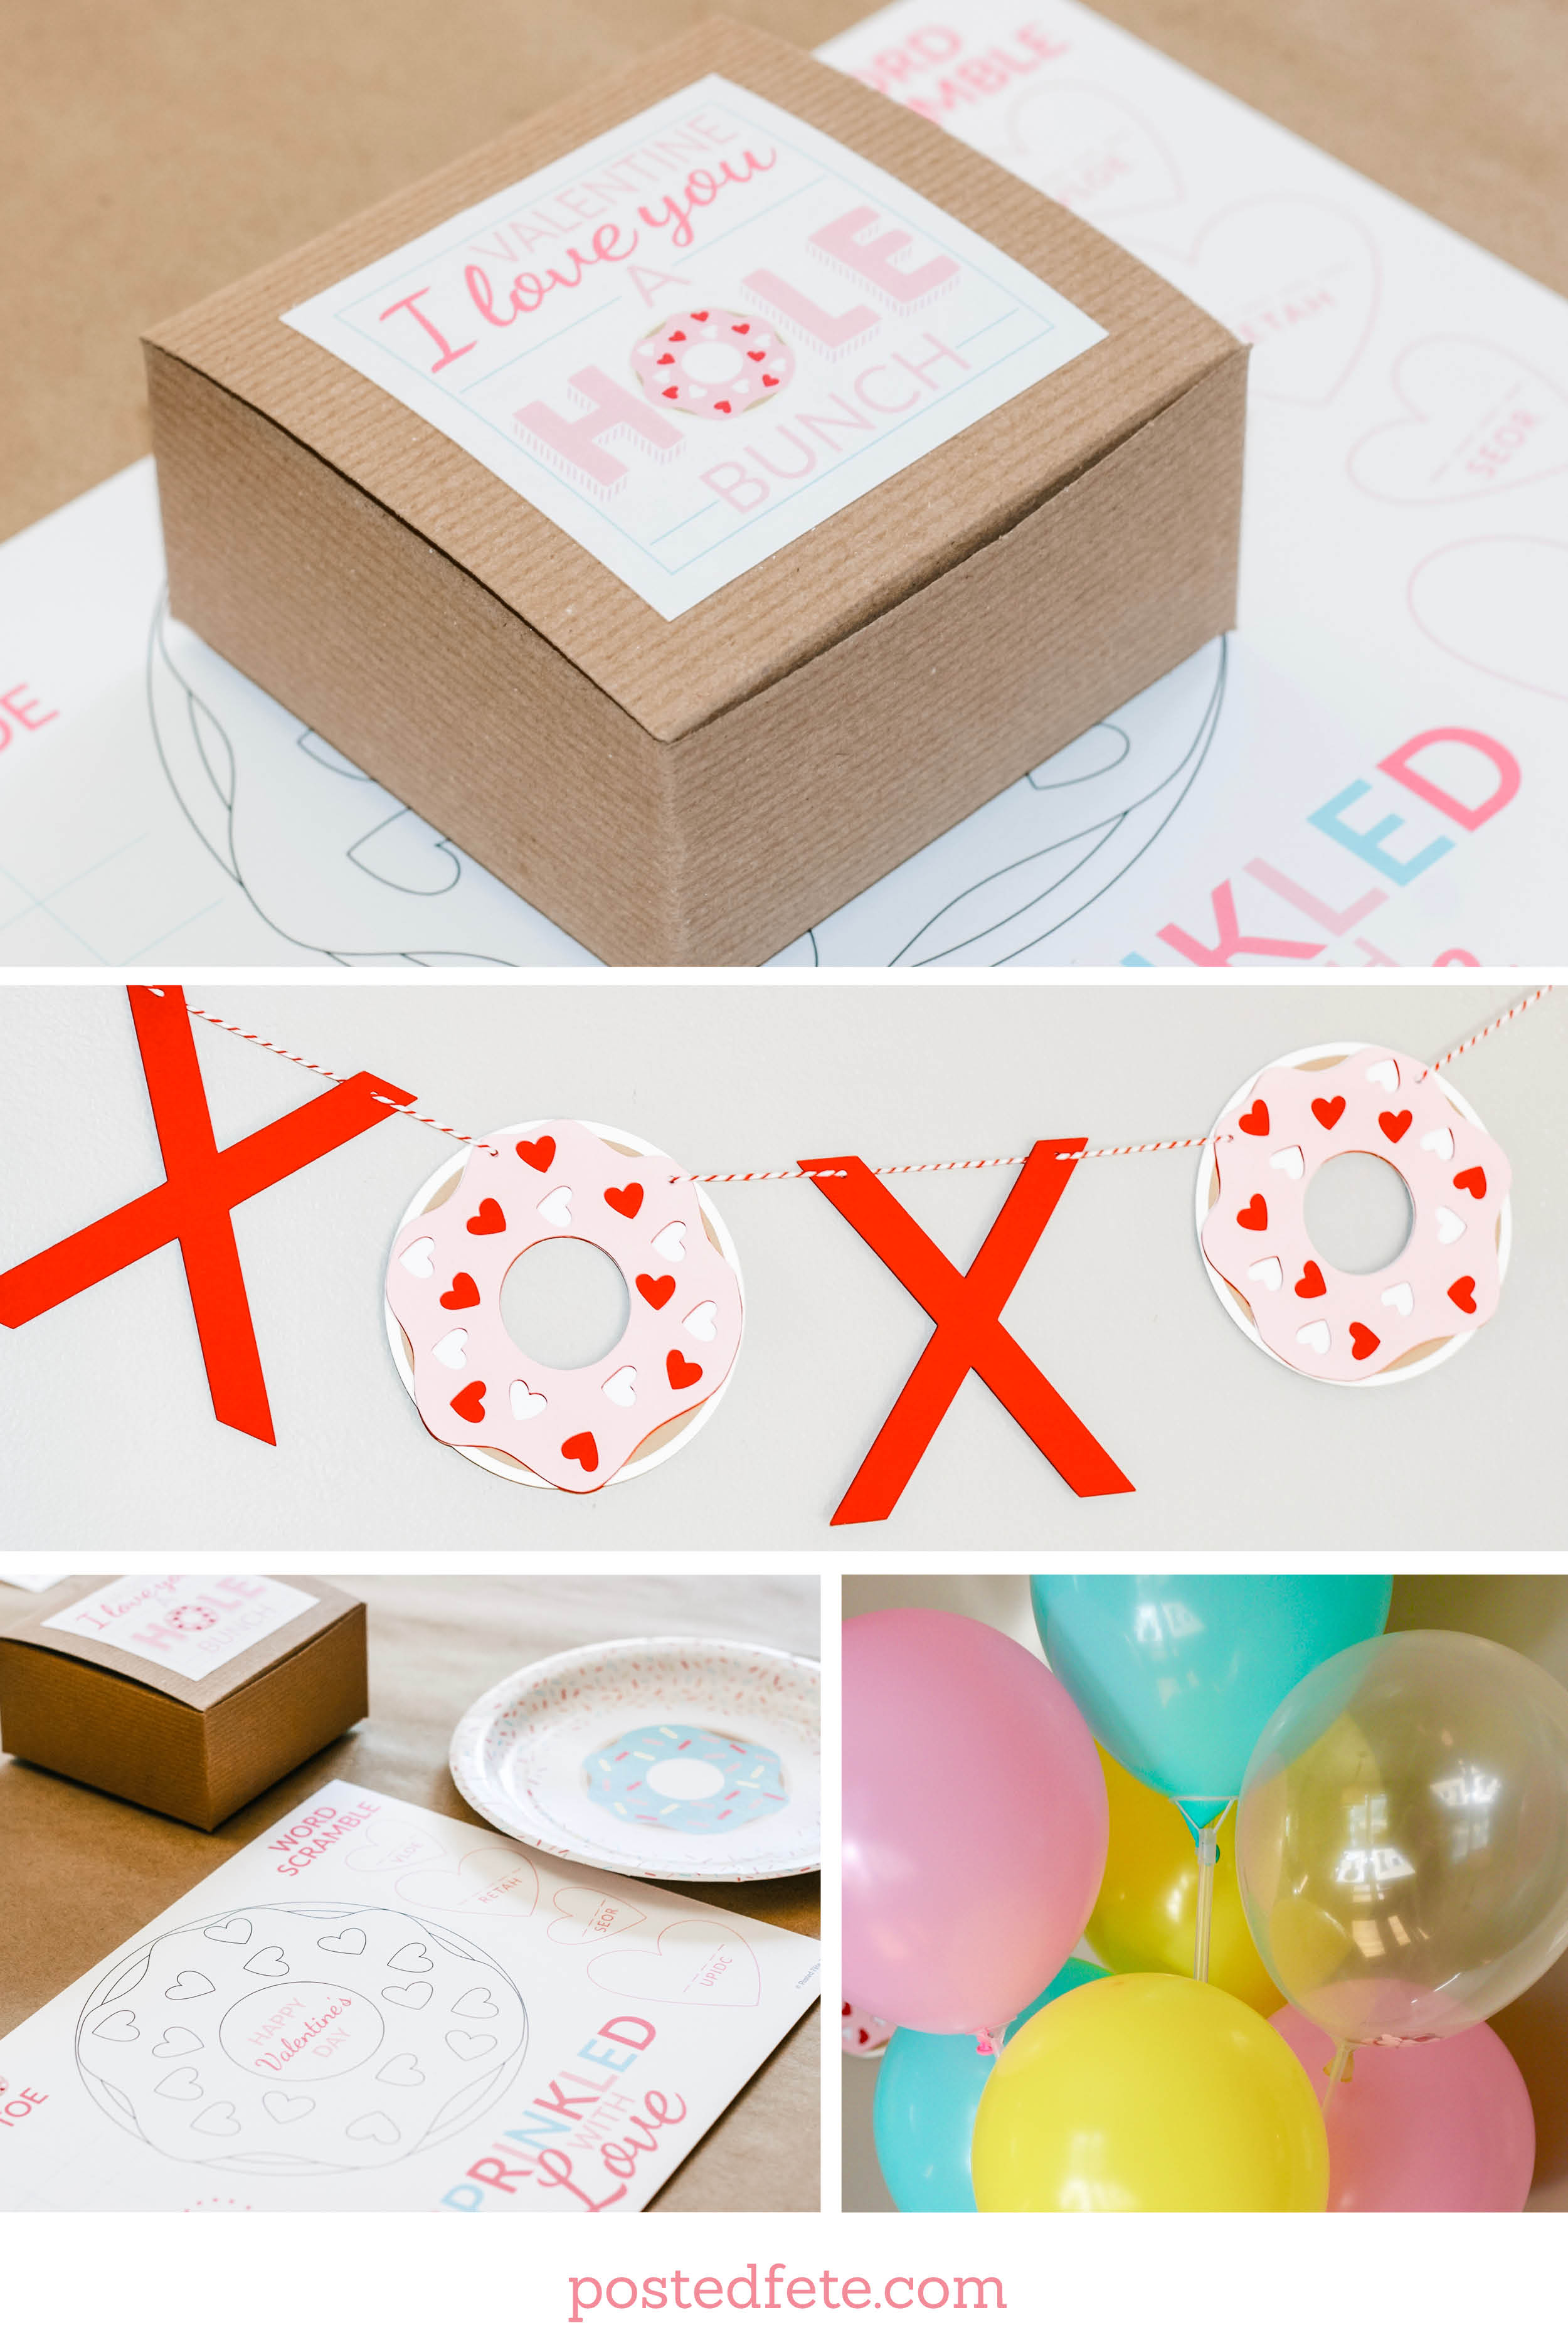 Sprinkled with Love Valentine's Day Breakfast Party Decorations | XOXO Banner, Donut Box, Balloons, and Coloring Page.